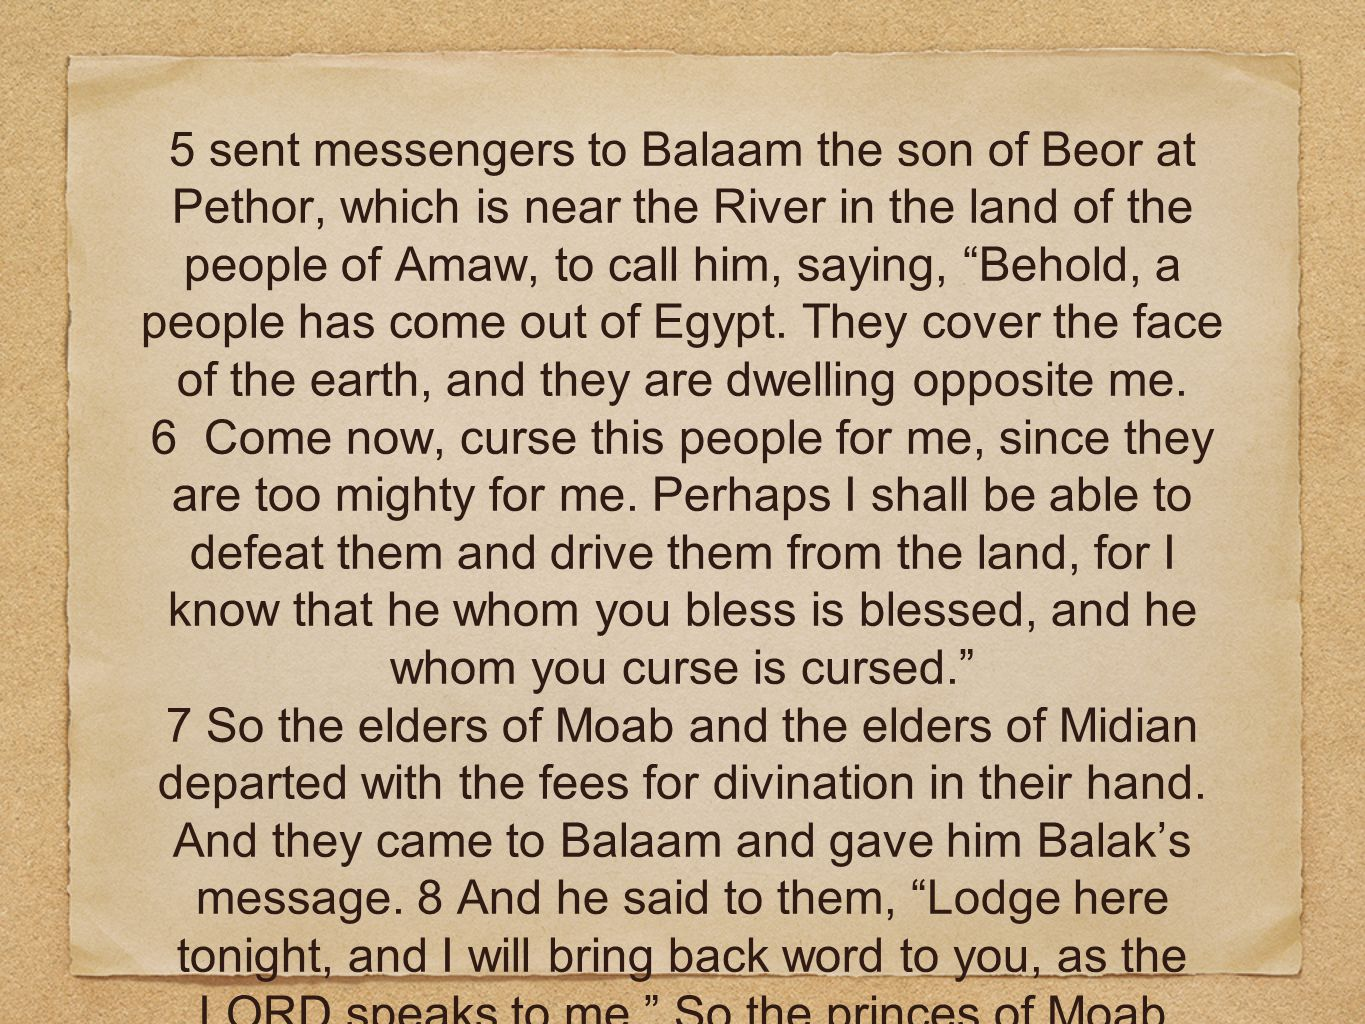 5 sent messengers to Balaam the son of Beor at Pethor, which is near the River in the land of the people of Amaw, to call him, saying, Behold, a people has come out of Egypt.